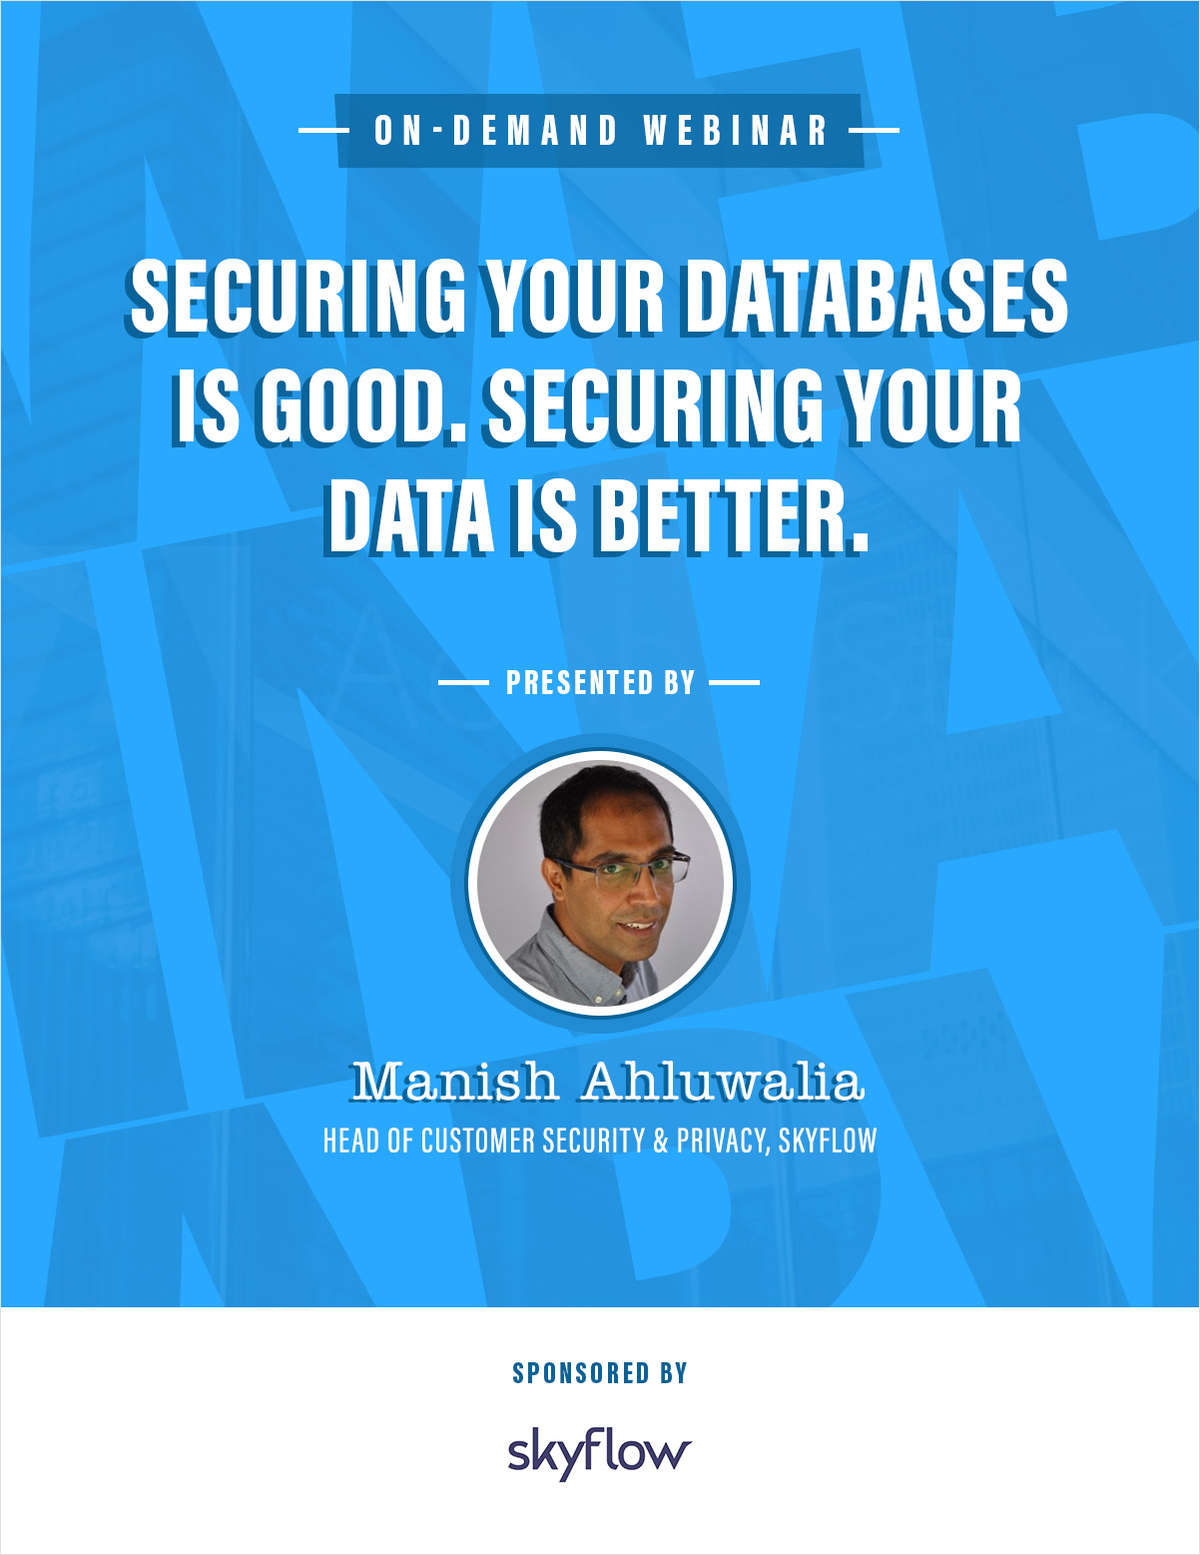 Securing your databases is good. Securing your data is better.